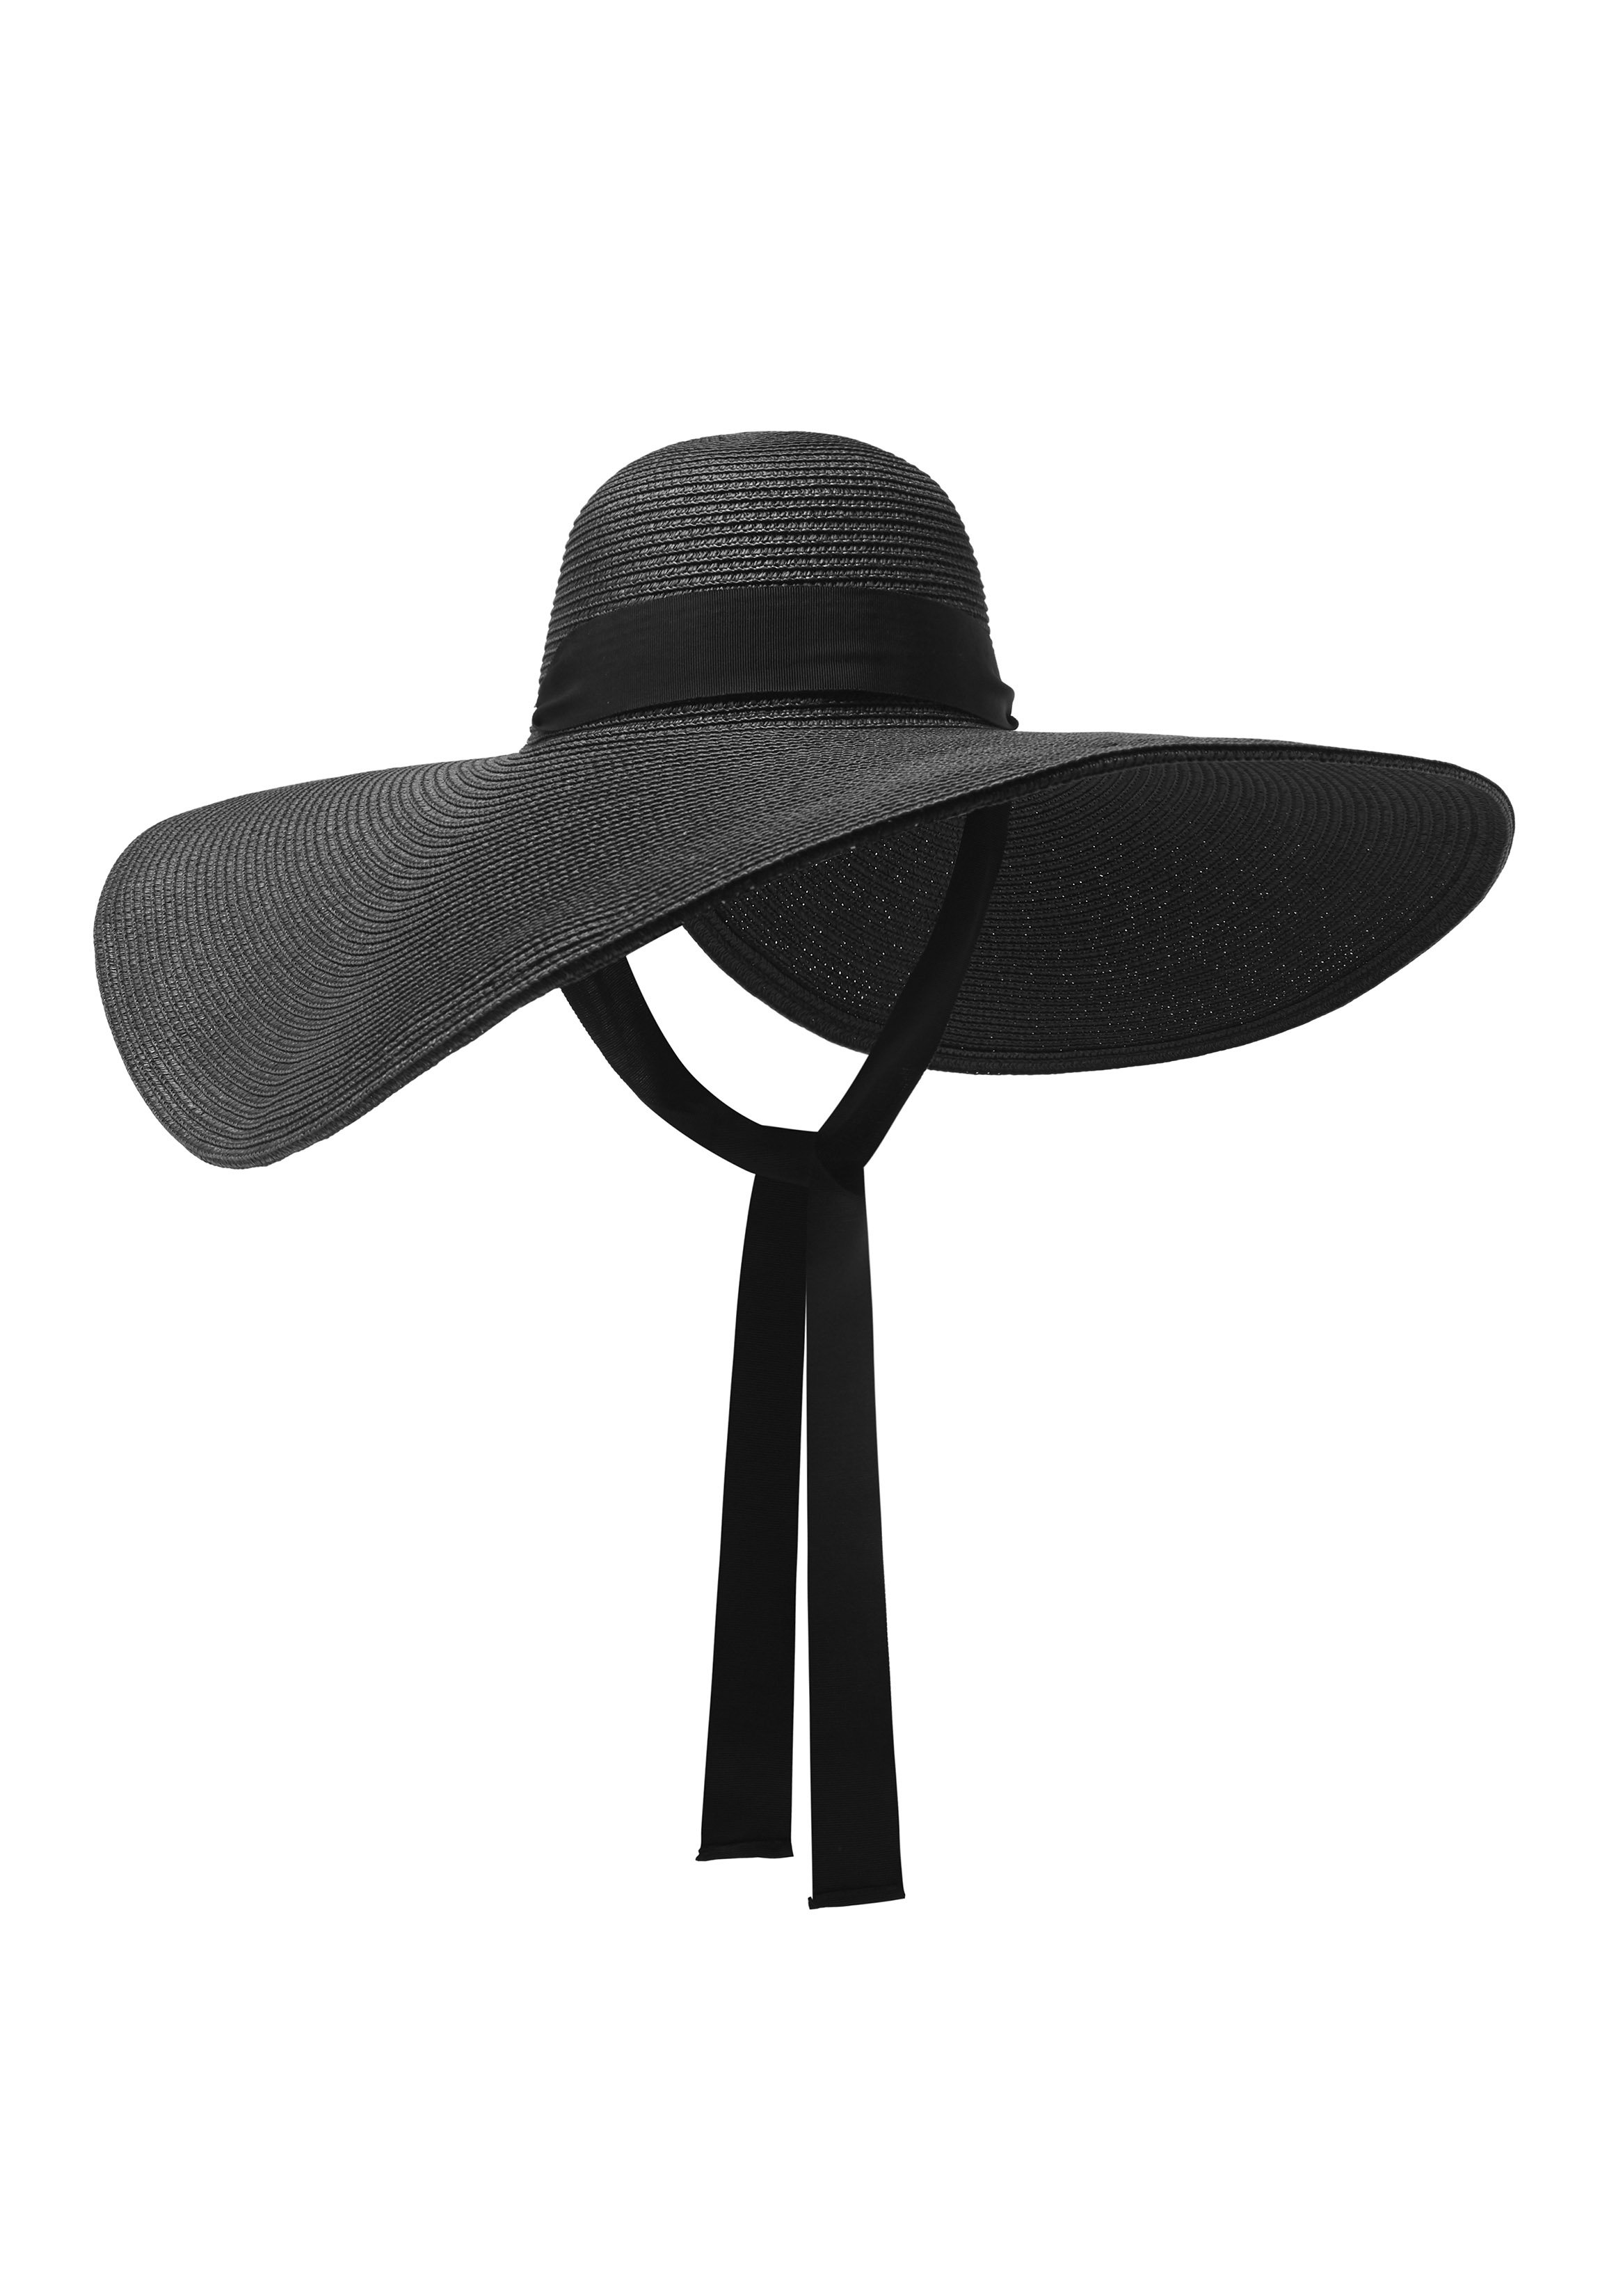 avenue the label sunhat How We Can Donate to Australian Bushfire Relief Efforts